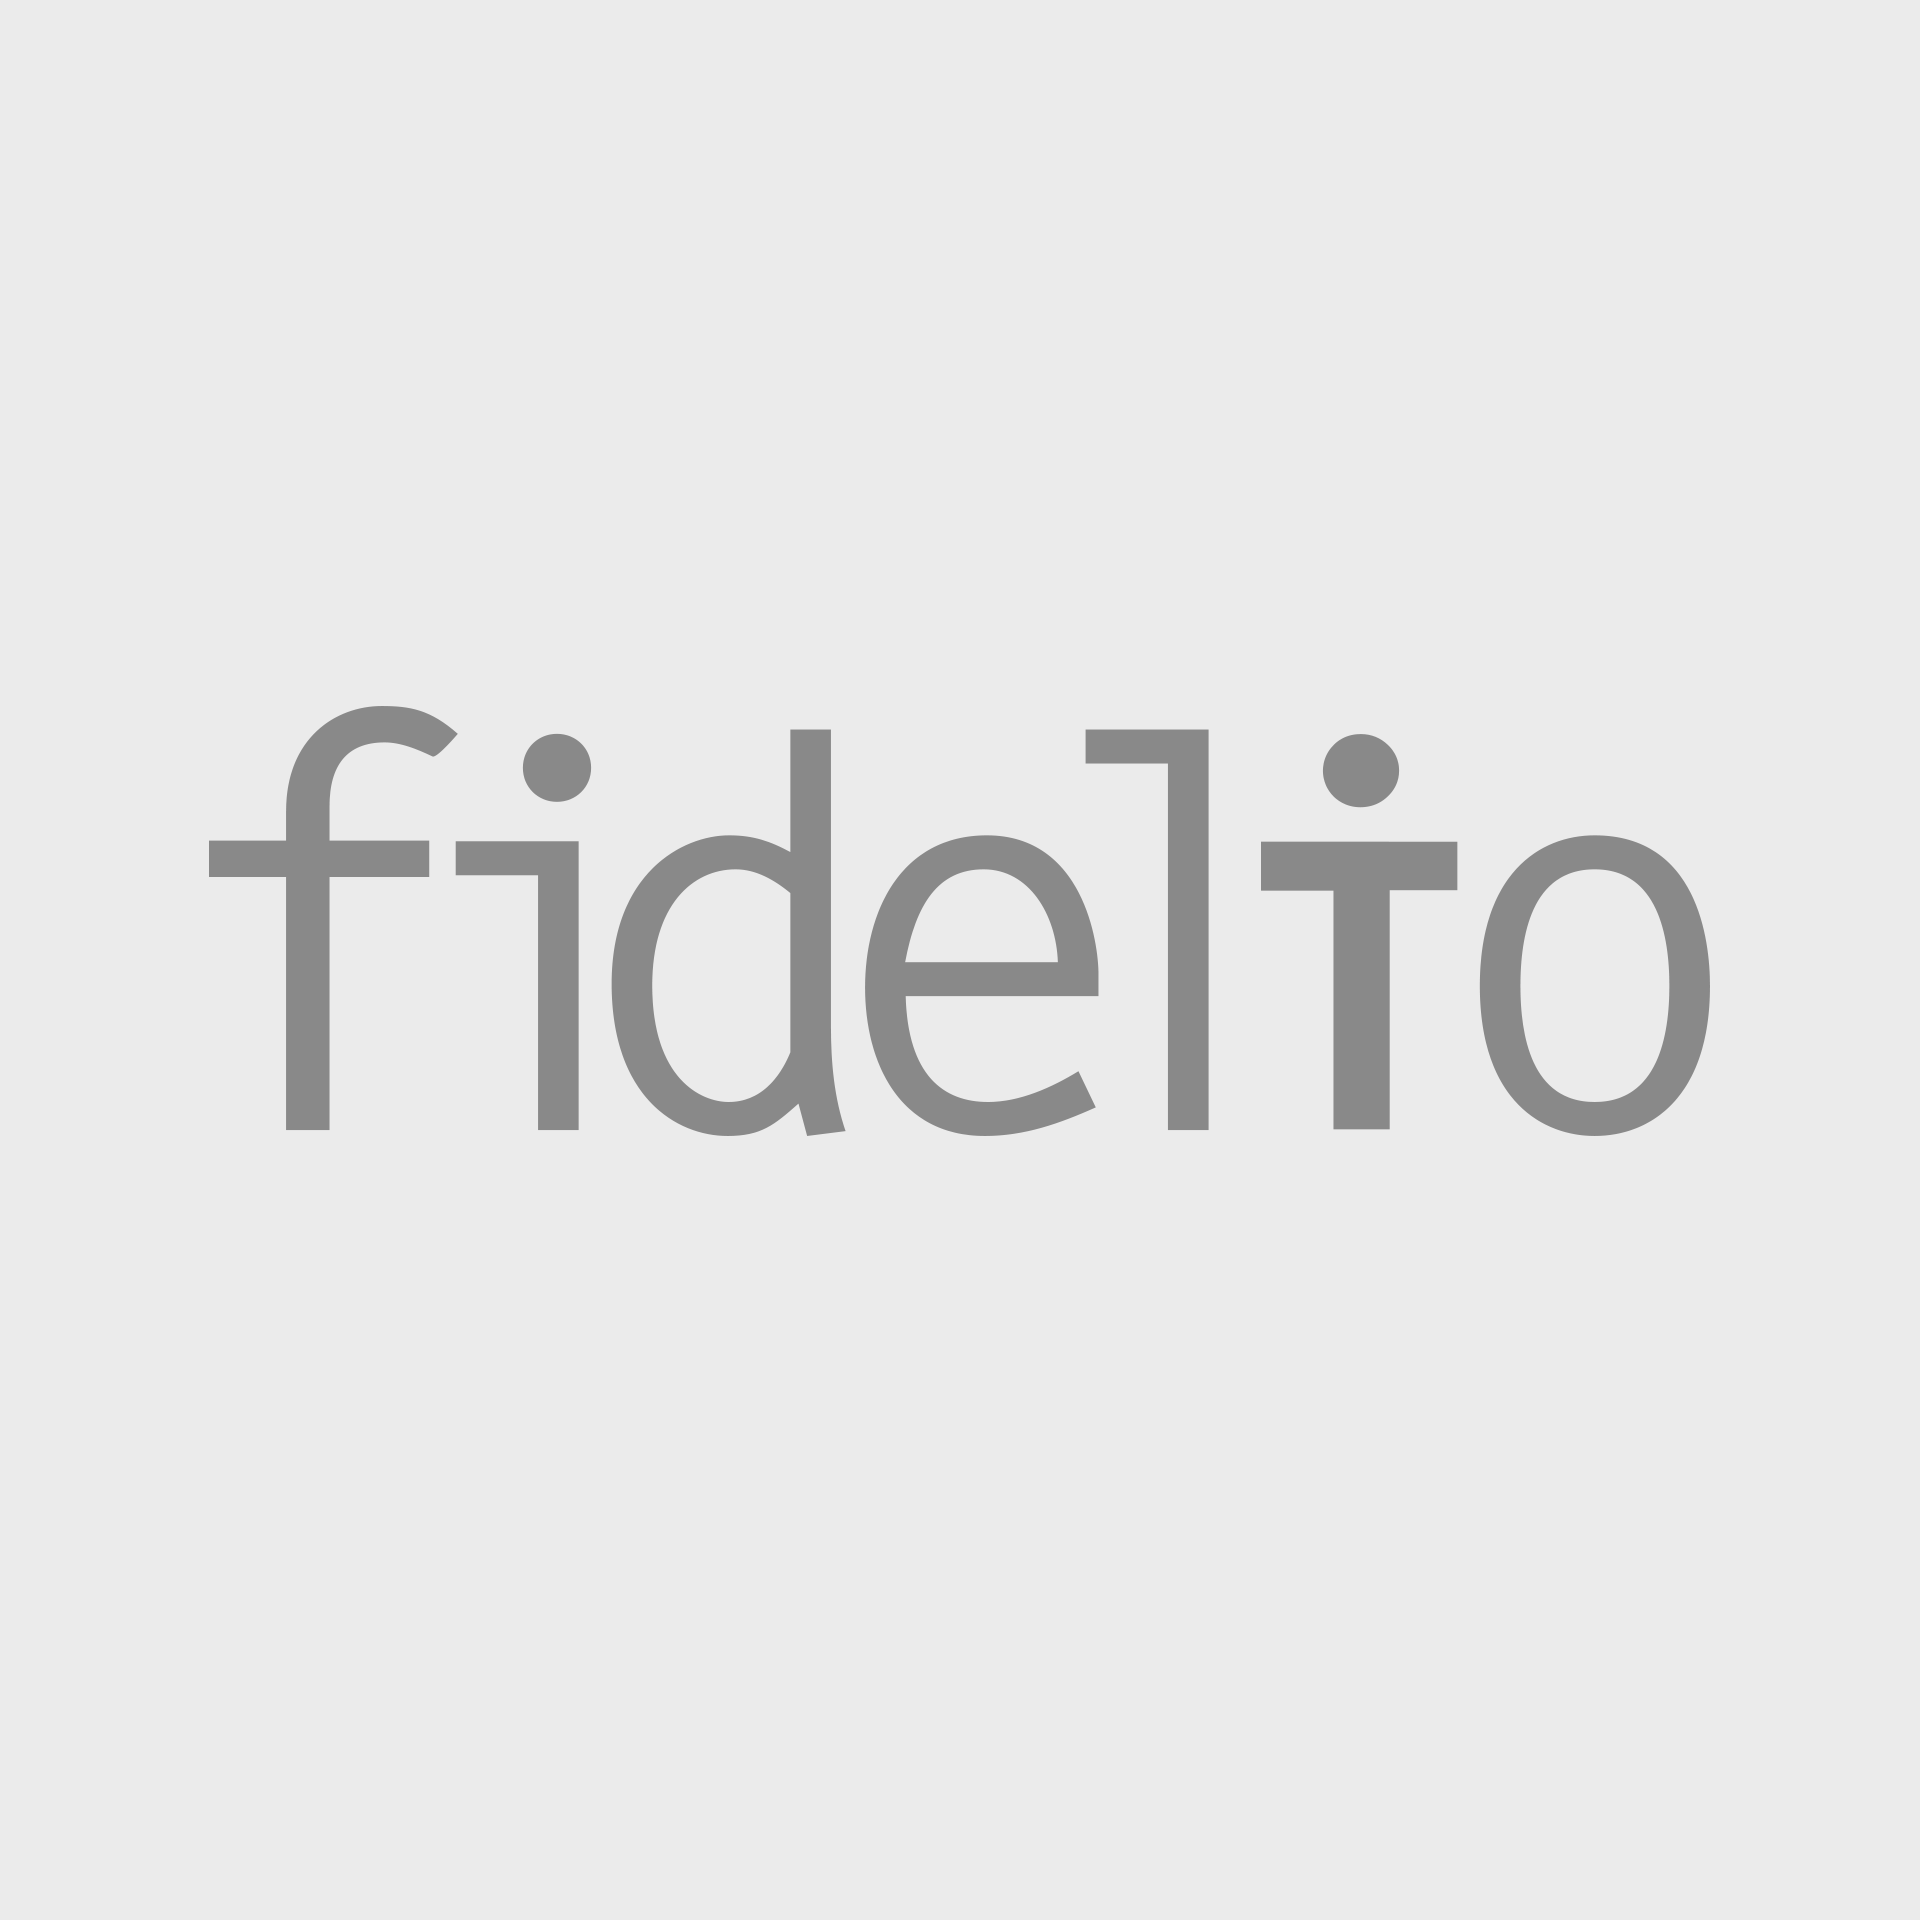 1867-68_american_reading_tour_map-132817.jpg